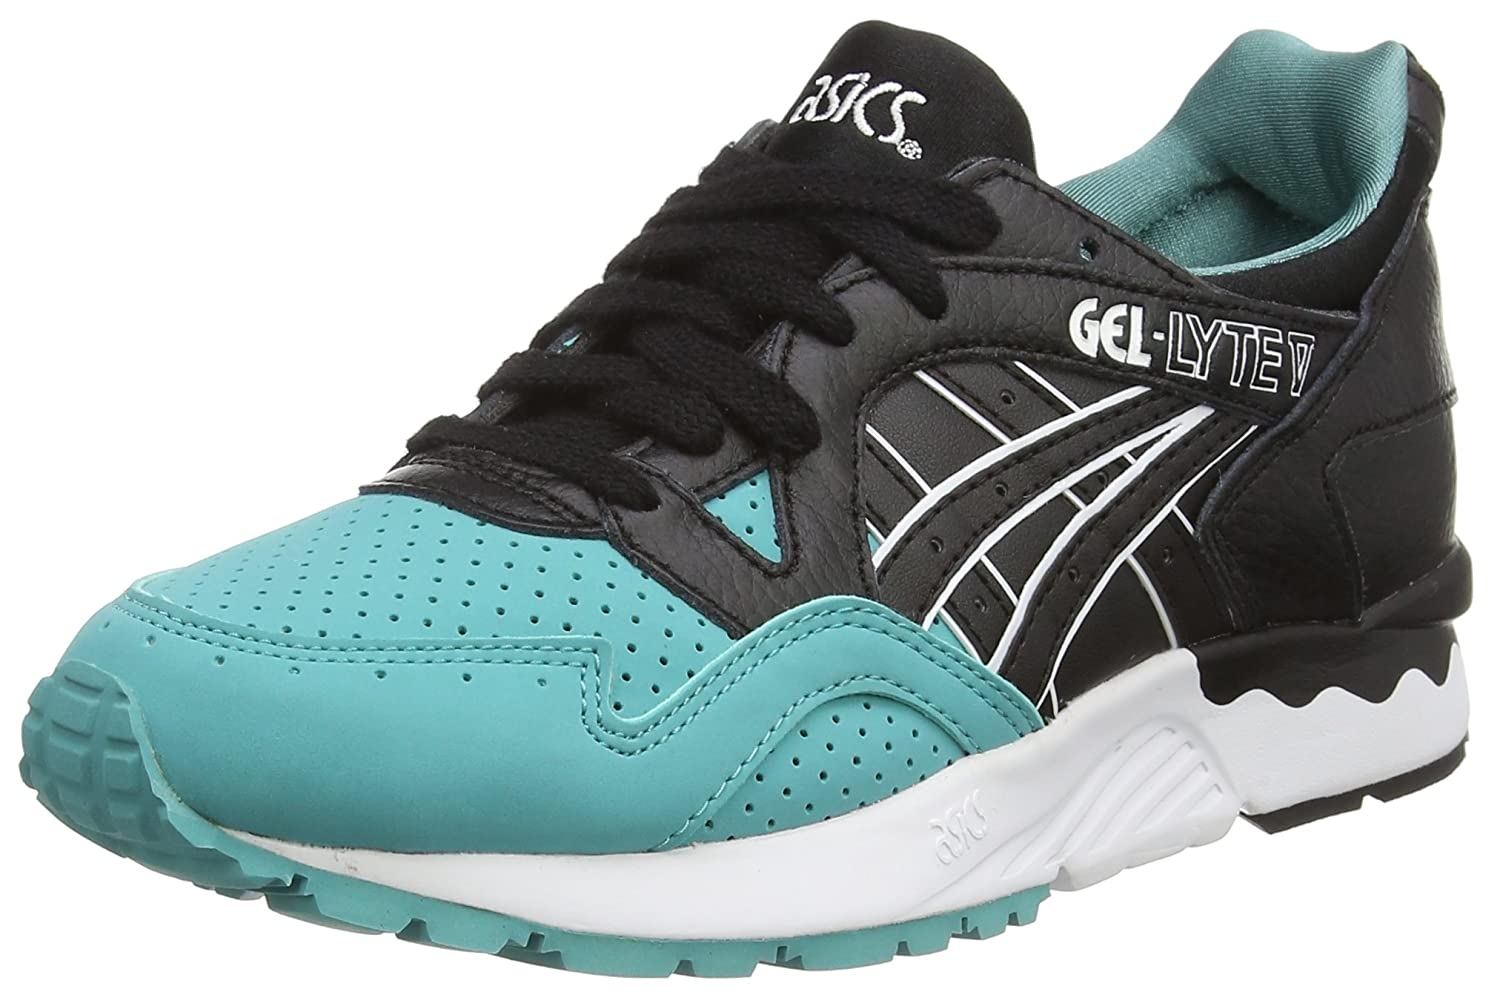 Asics Gel-Lyte V - Zapatillas Bajas, Unisex, Color Azul (Latigo Bay/Black  8990), Talla 39.5: Amazon.es: Zapatos y complementos